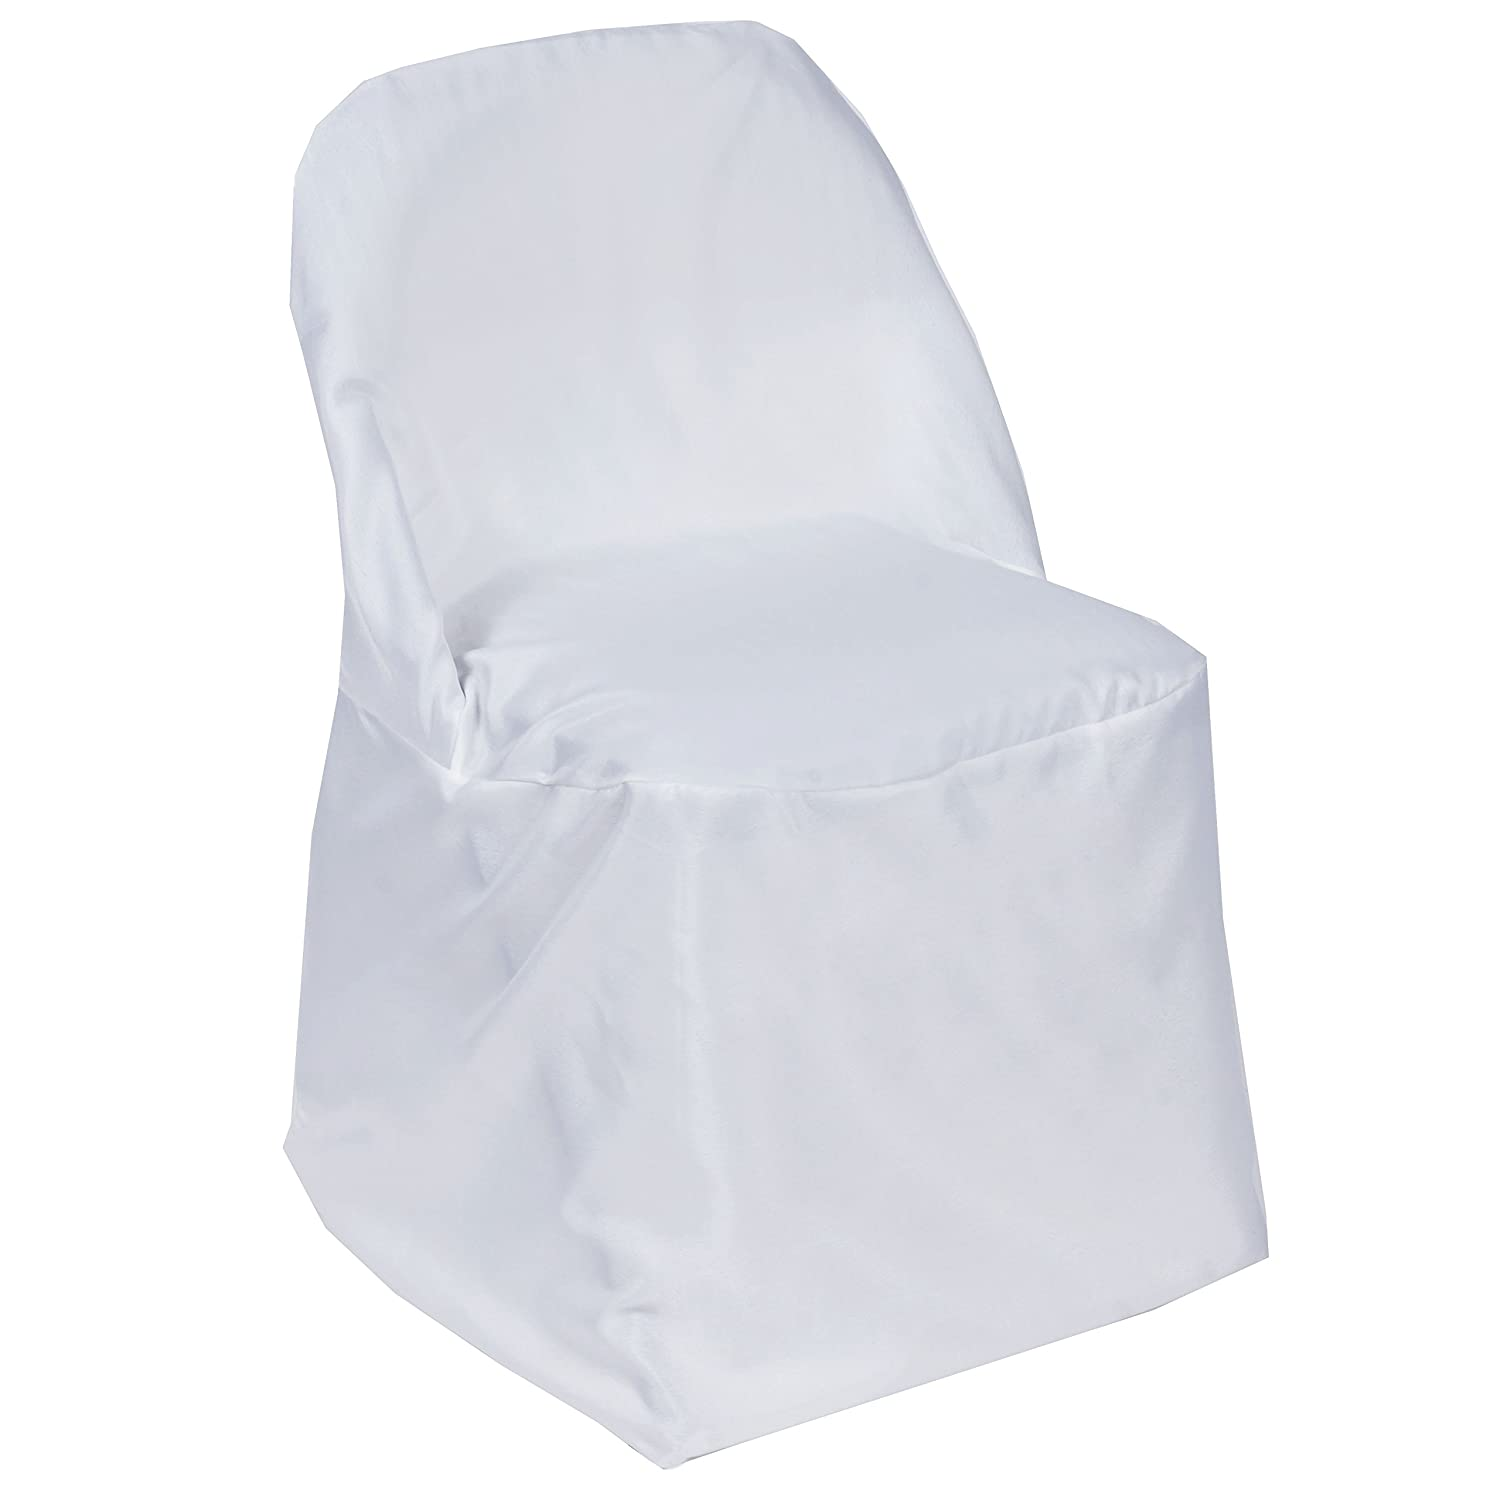 Enjoyable Balsacircle 50 Pcs White Folding Round Polyester Chair Covers For Party Wedding Linens Decorations Dinning Ceremony Reception Supplies Creativecarmelina Interior Chair Design Creativecarmelinacom